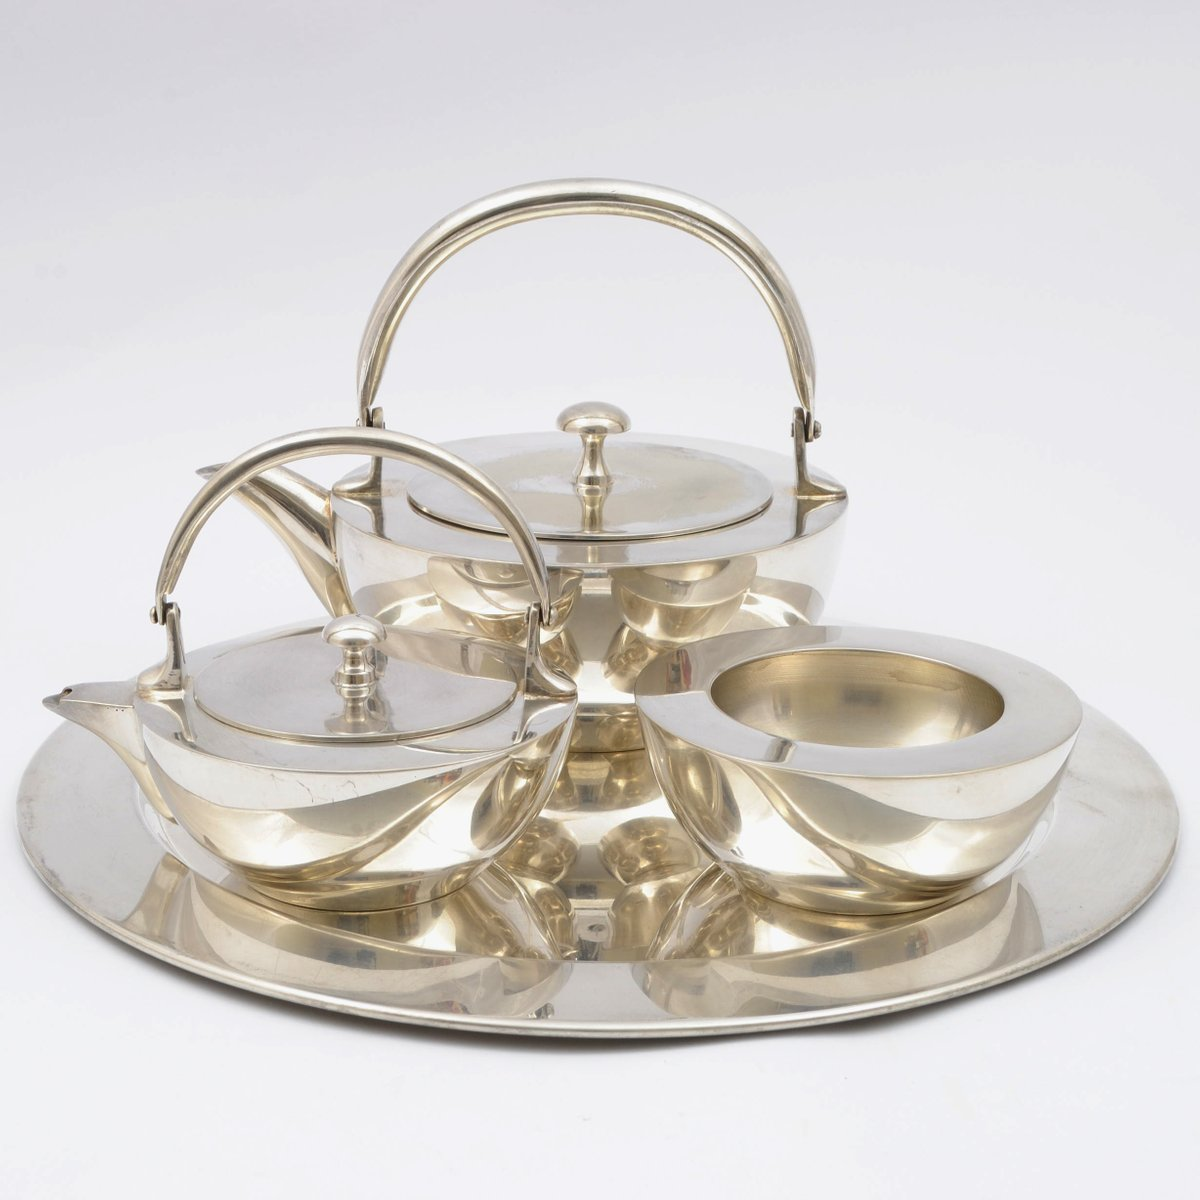 Functionalist Silver Plated Tea Set 1930s  sc 1 st  Pamono & Functionalist Silver Plated Tea Set 1930s for sale at Pamono